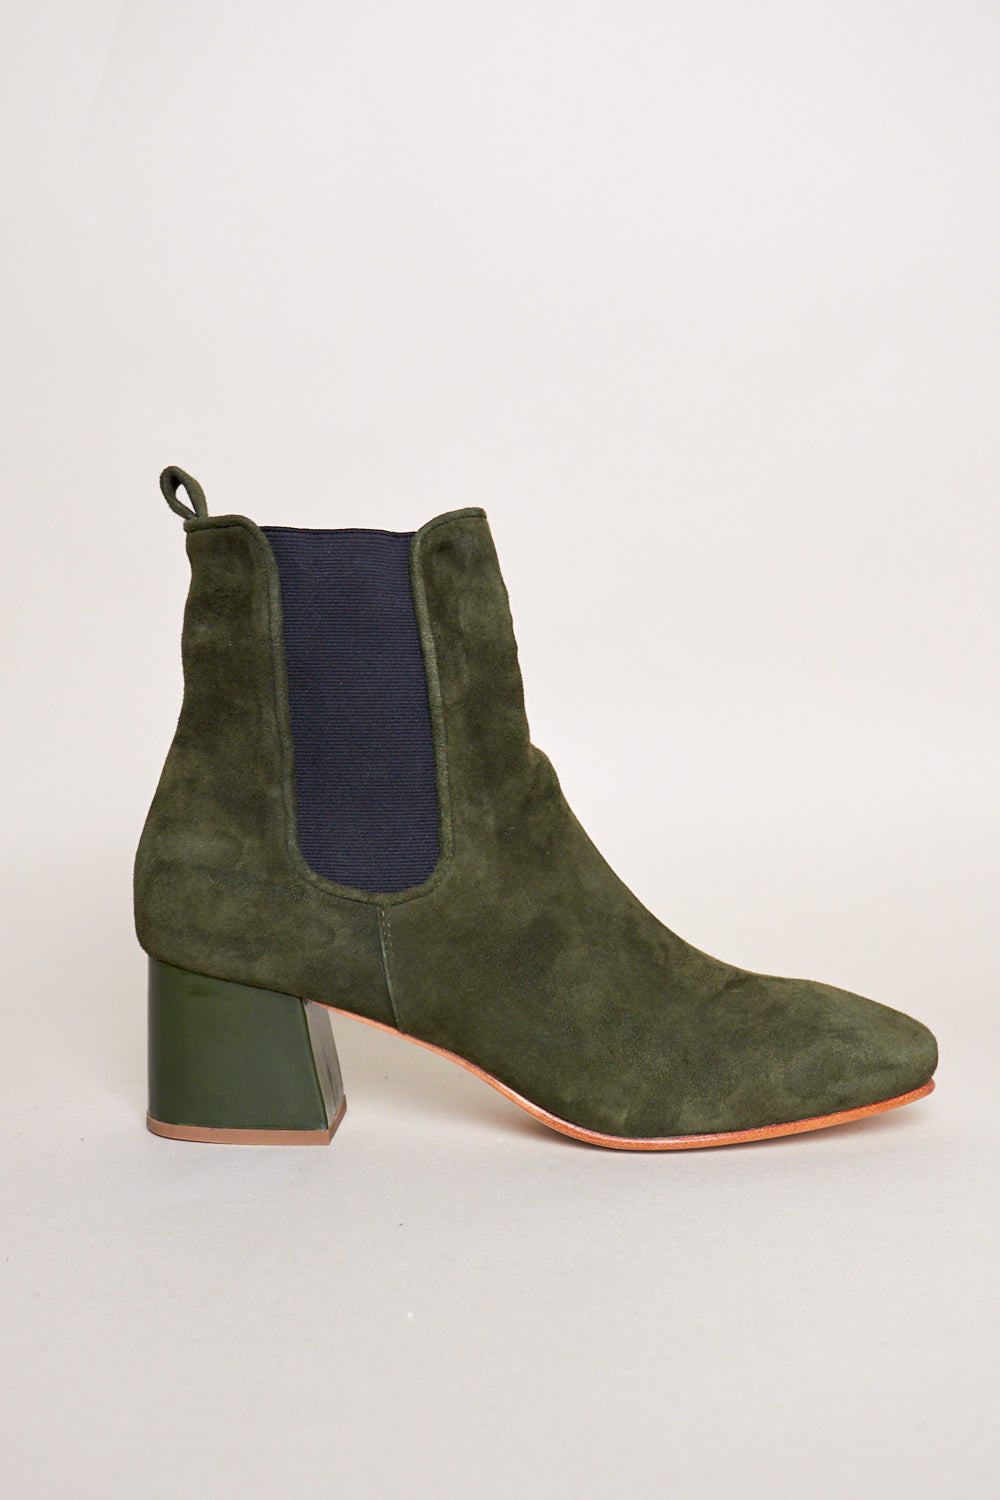 Bristol Ankle Boot in Pine / Bottle